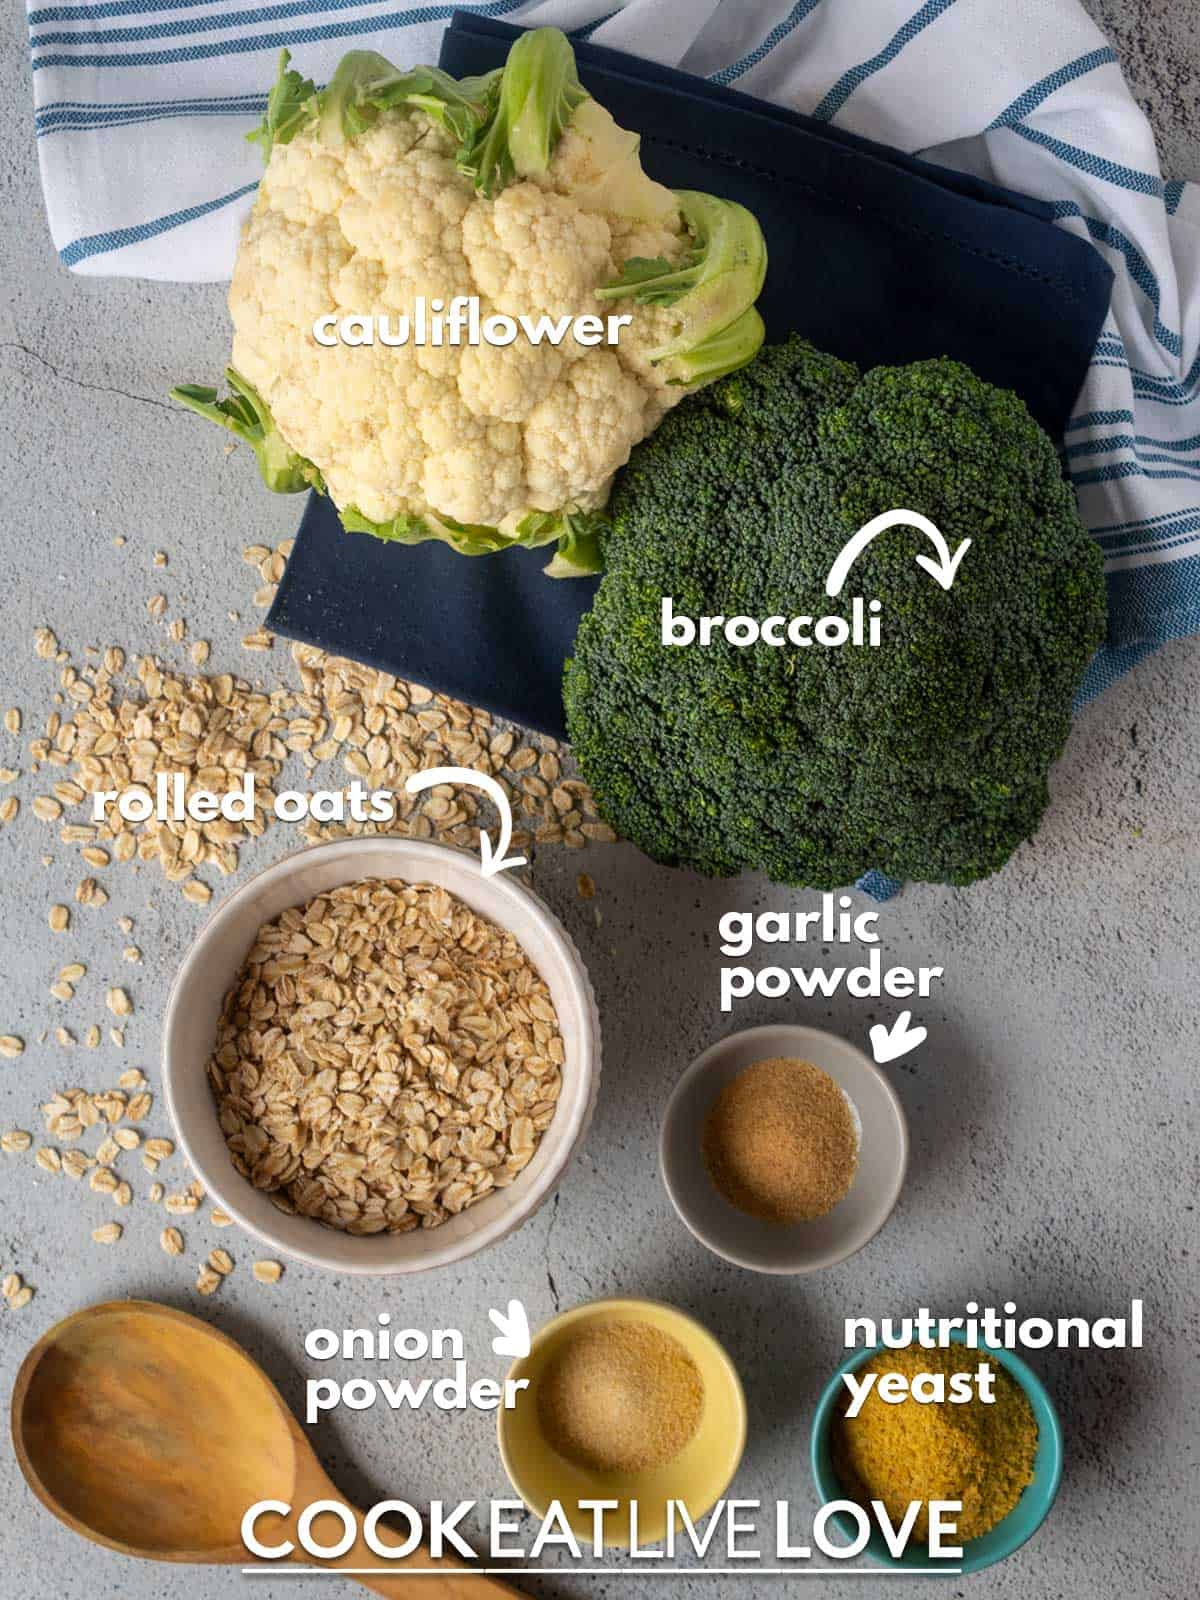 Ingredients to make savory oats instant pot on the table.